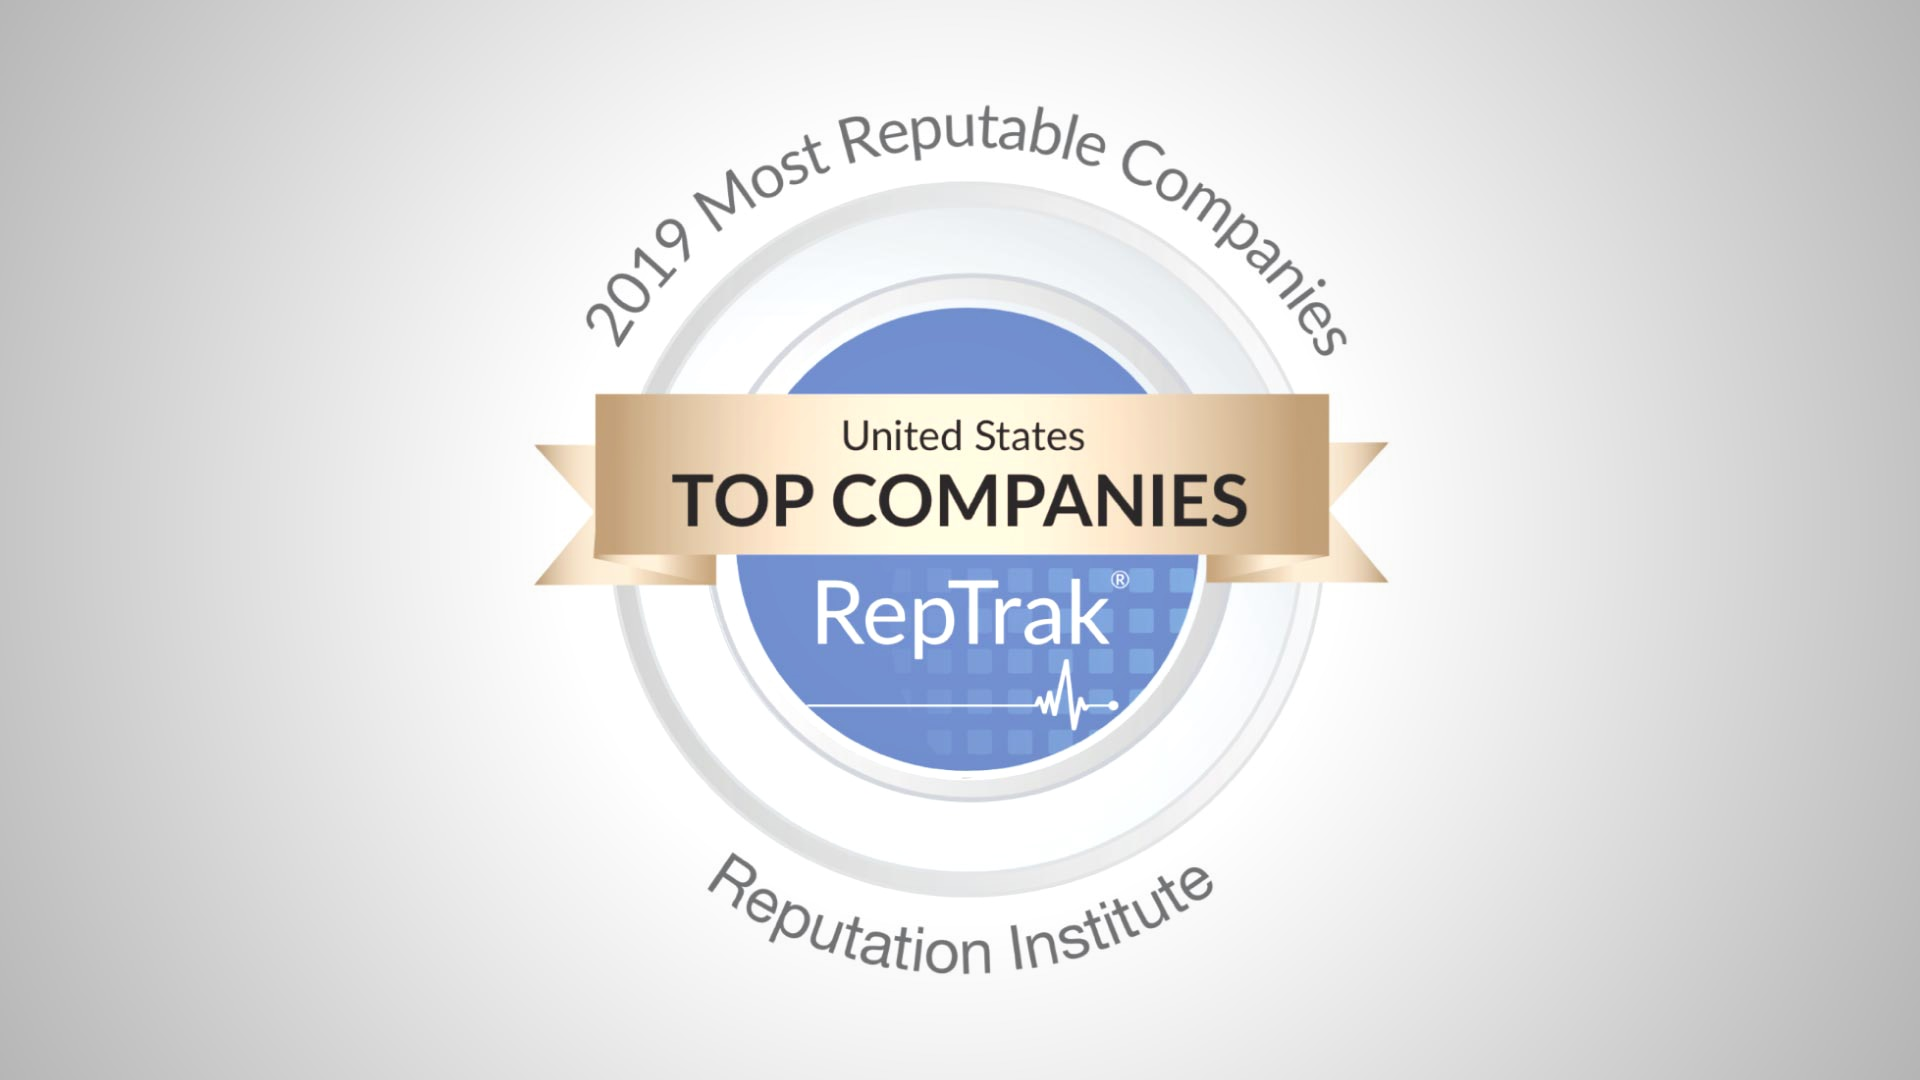 Stanley Black & Decker Named as One of the 100 Most Reputable Companies in the United States by the Reputation Institute